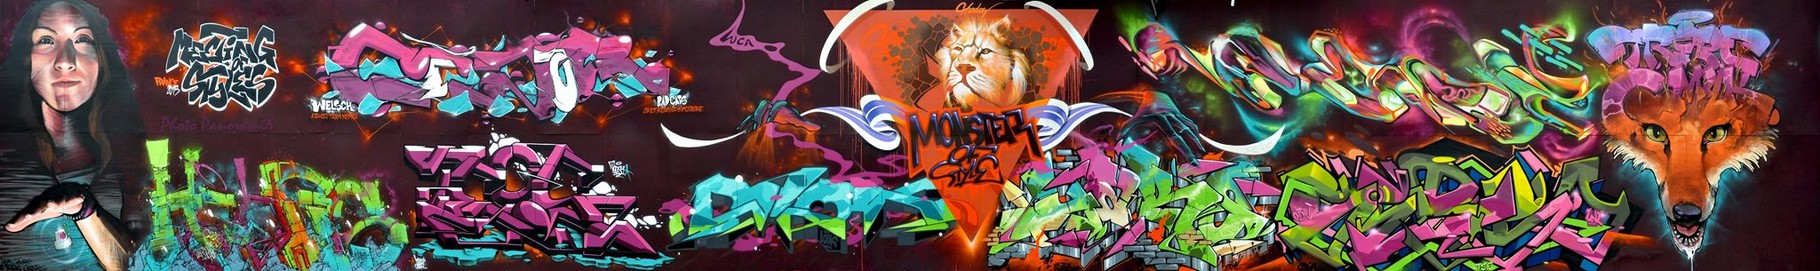 Meeting Of Style (Main wall) ) JEAN ROOBLE X CESAR X SHURER X TEOS X PABLO X MUTHA X SHADOW X YAKO X GERSO X ? X TRETZE - Perpignan (2015) ©Panoramix